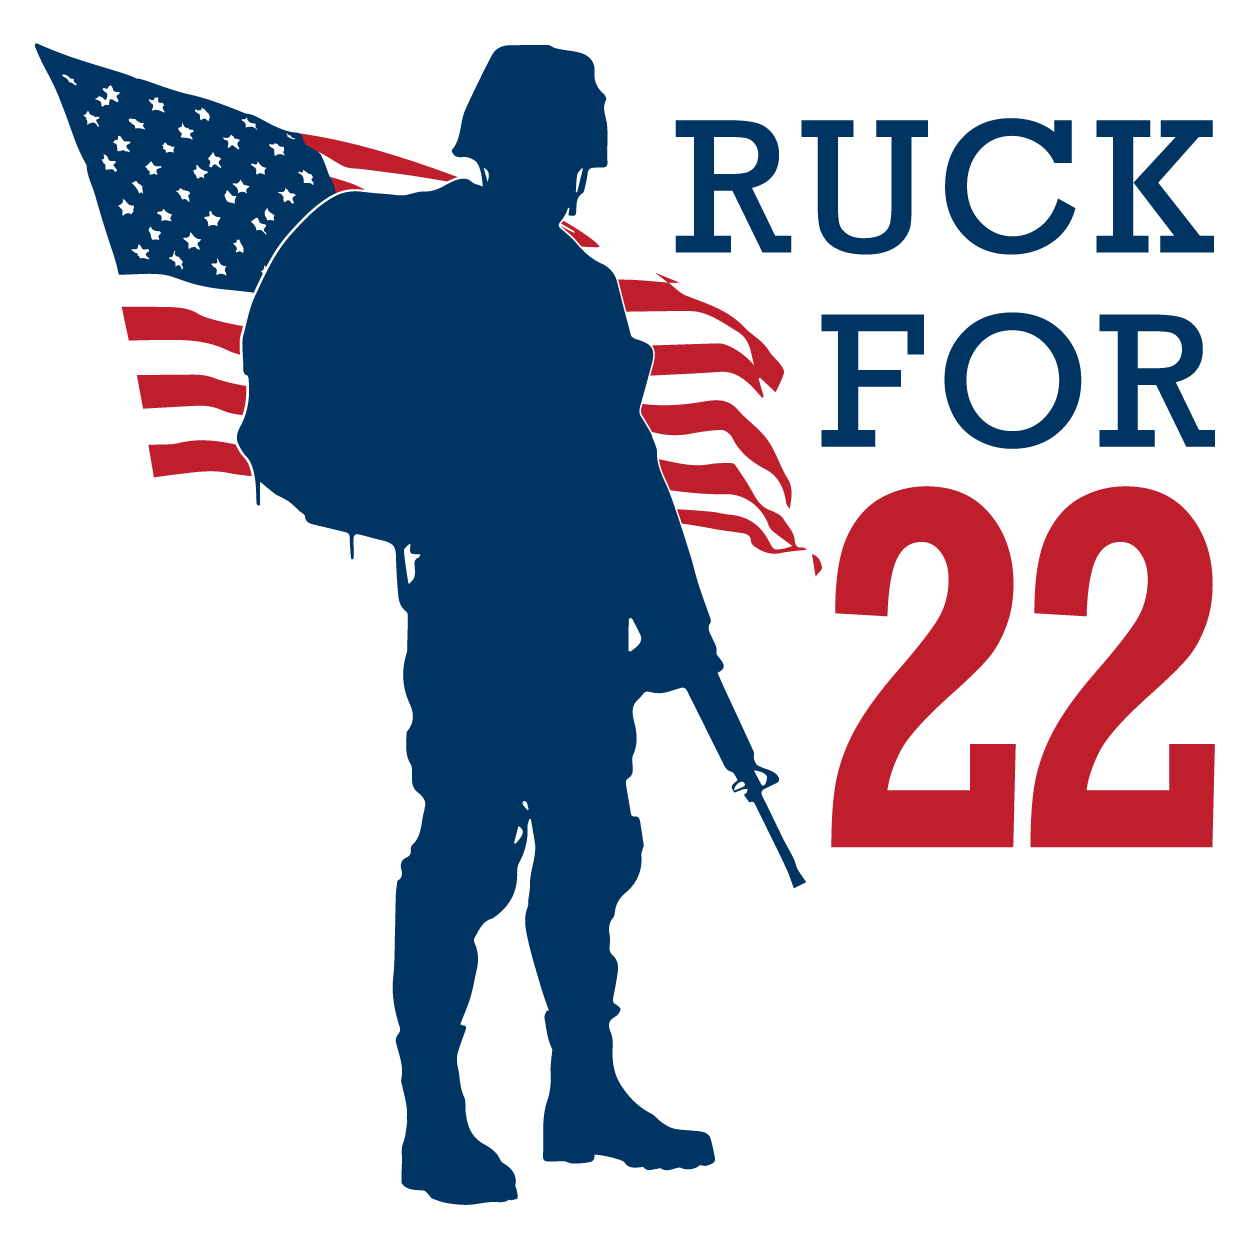 RUCK for 22